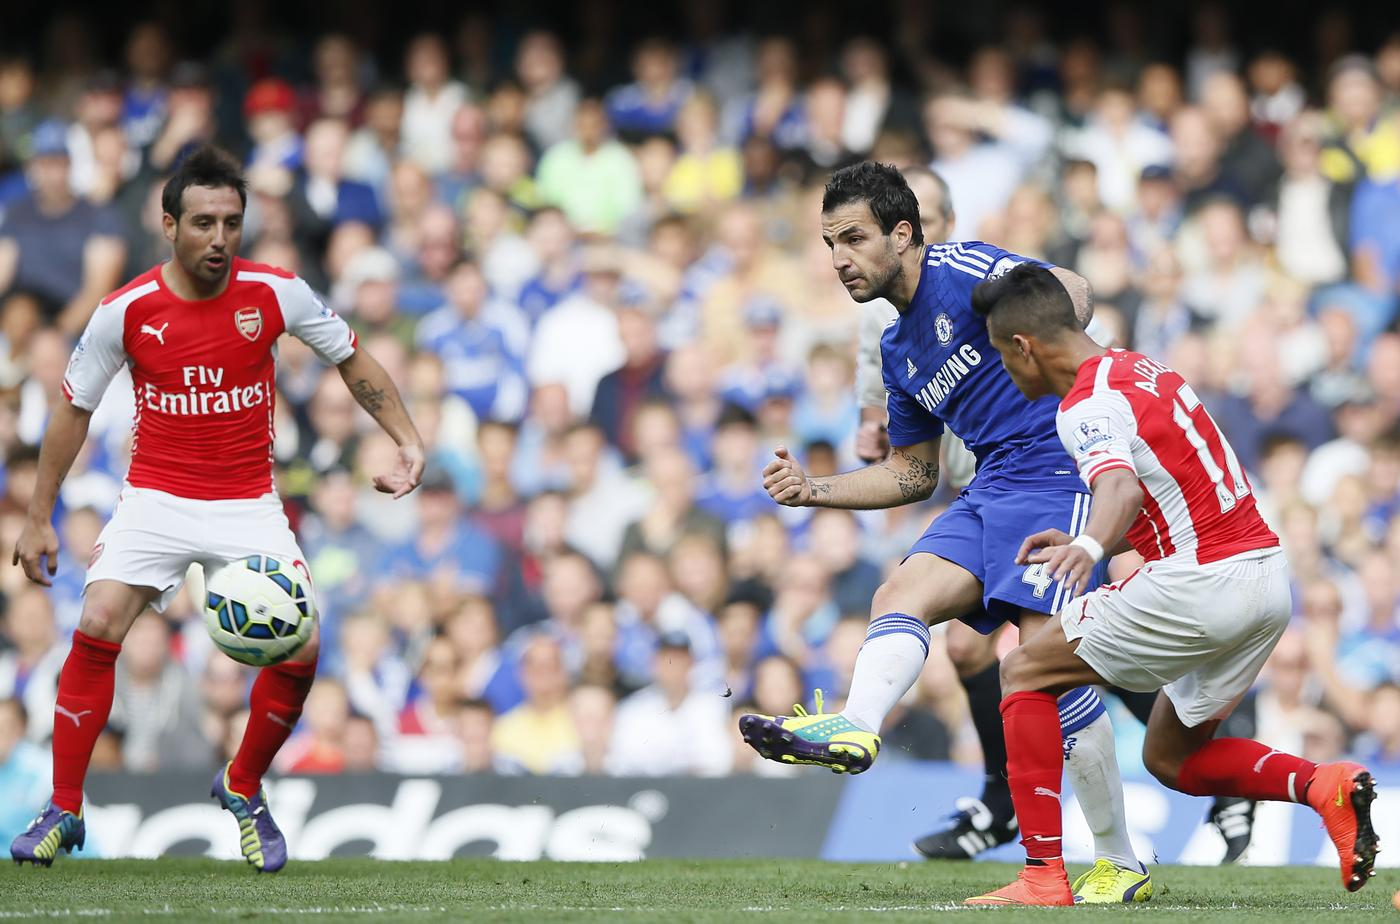 Cesc Fabregas: Arsenal fans love me but I want to win everything at Chelsea